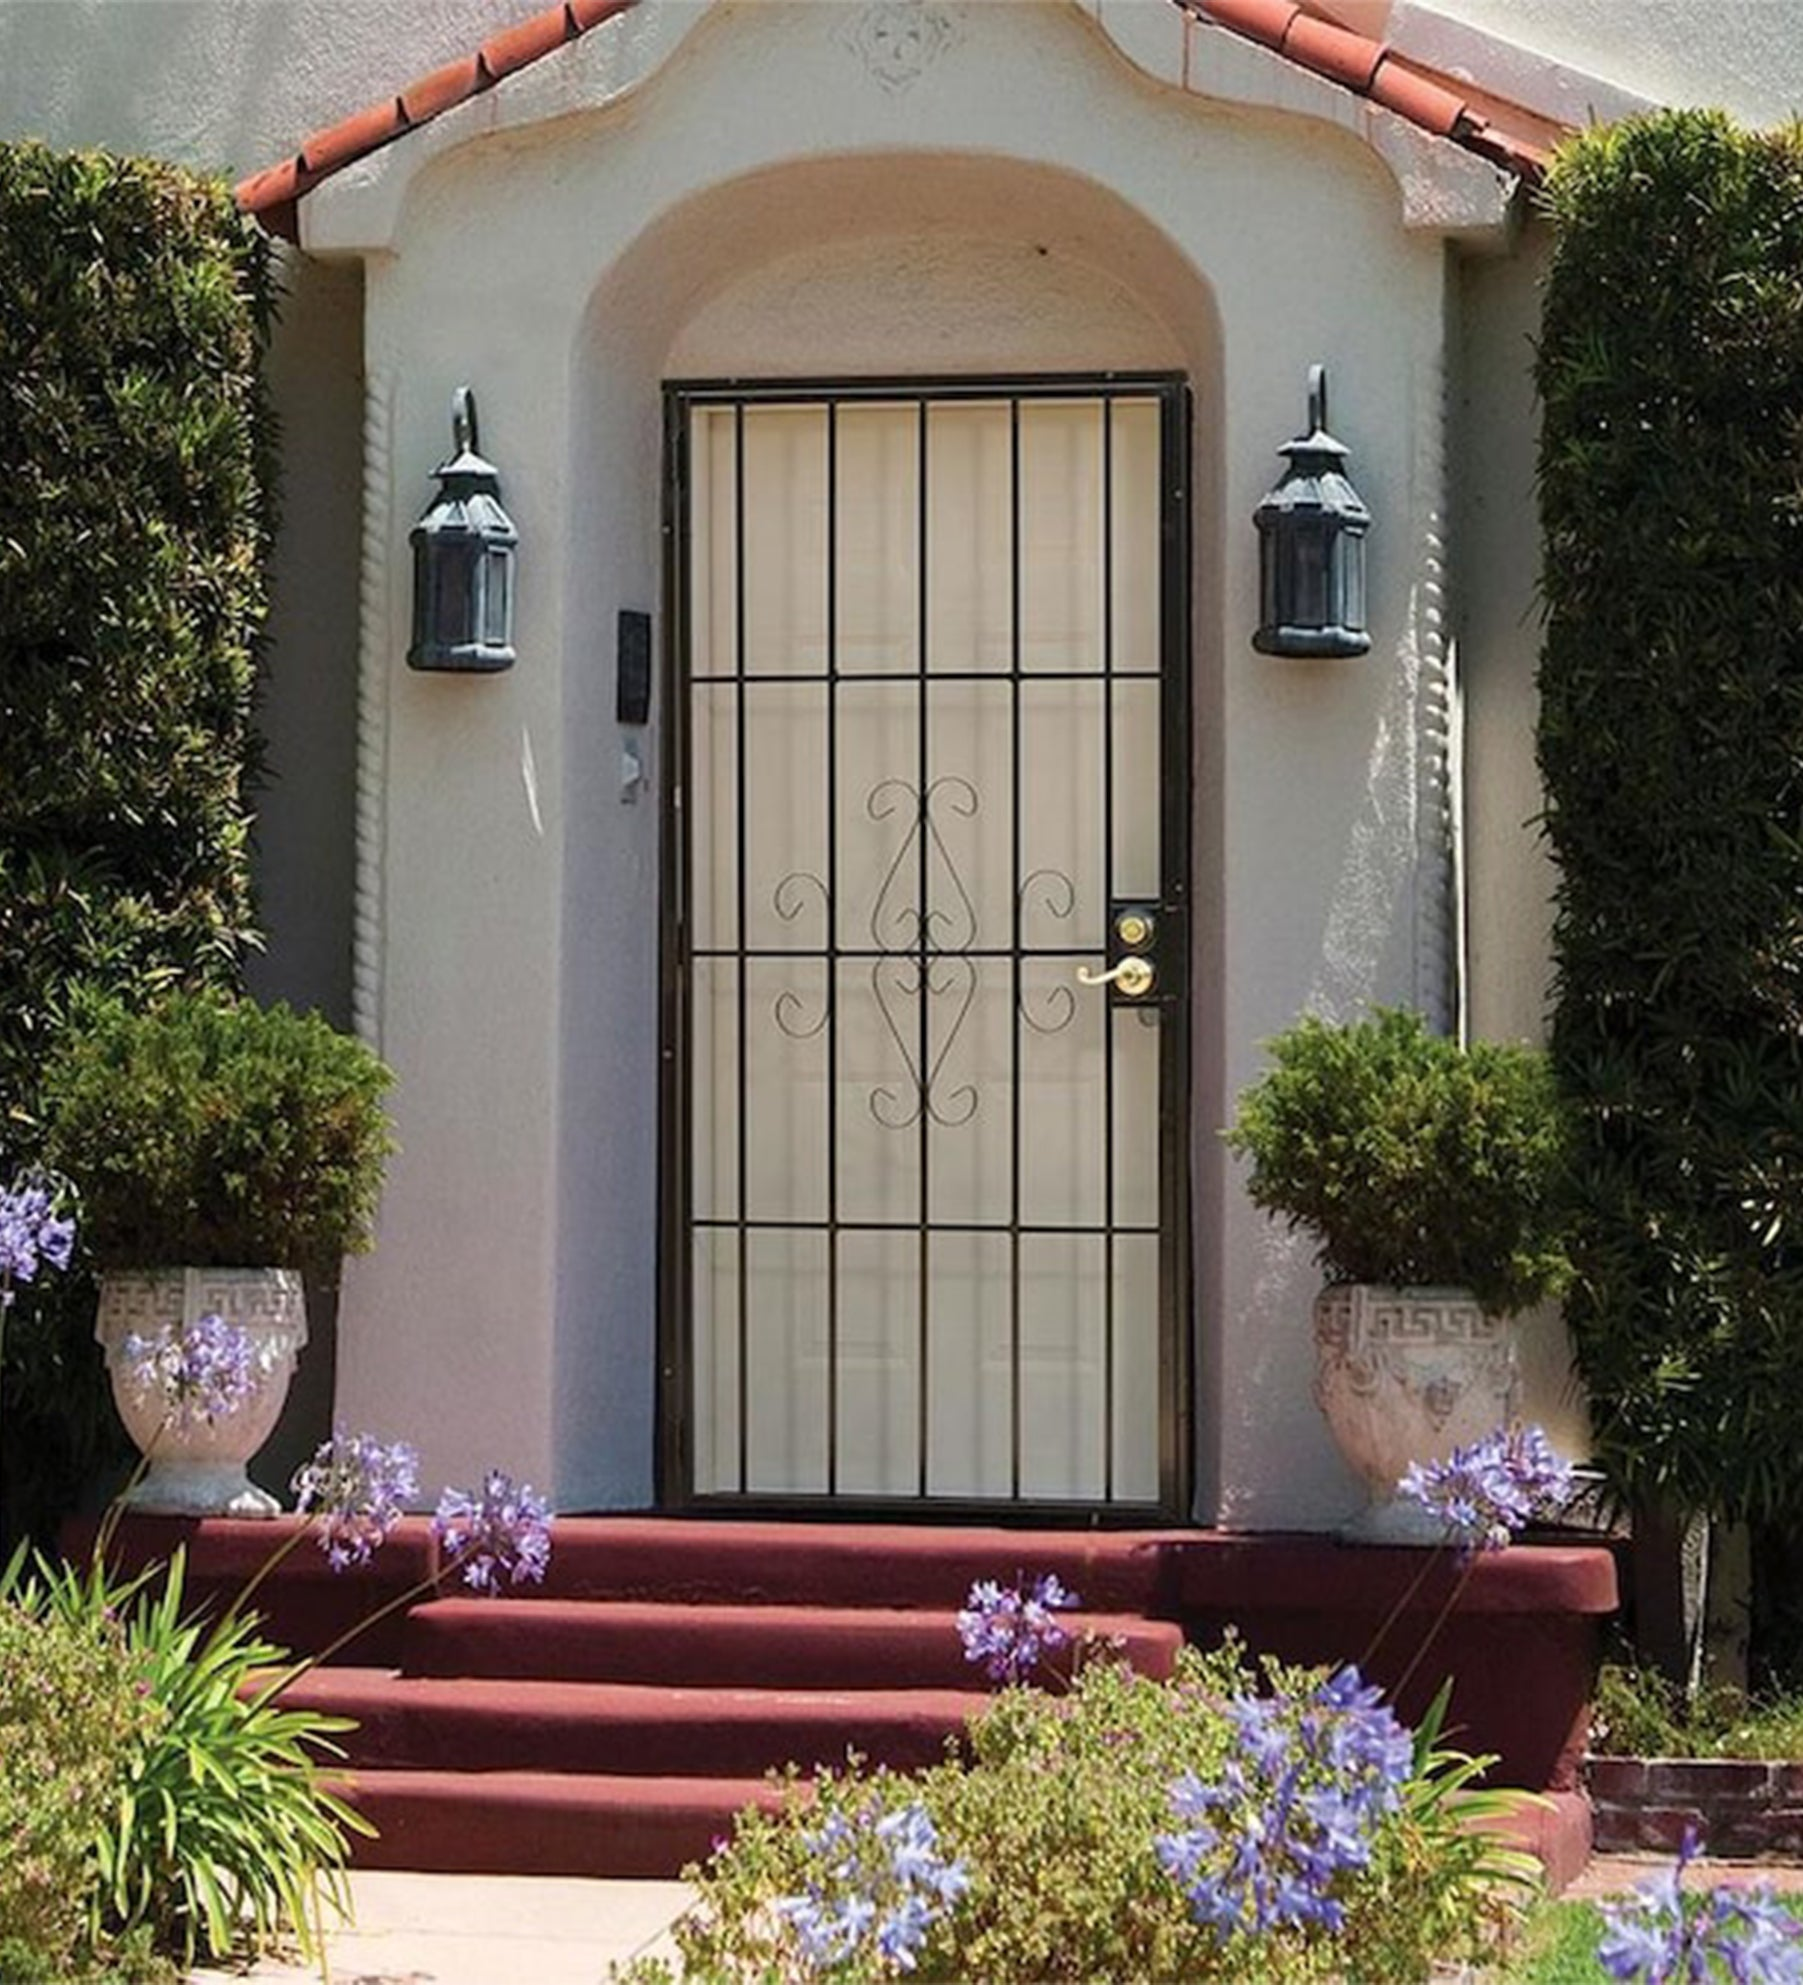 INSTALLED Gatehouse Magnum Steel Single Door STARTING $500